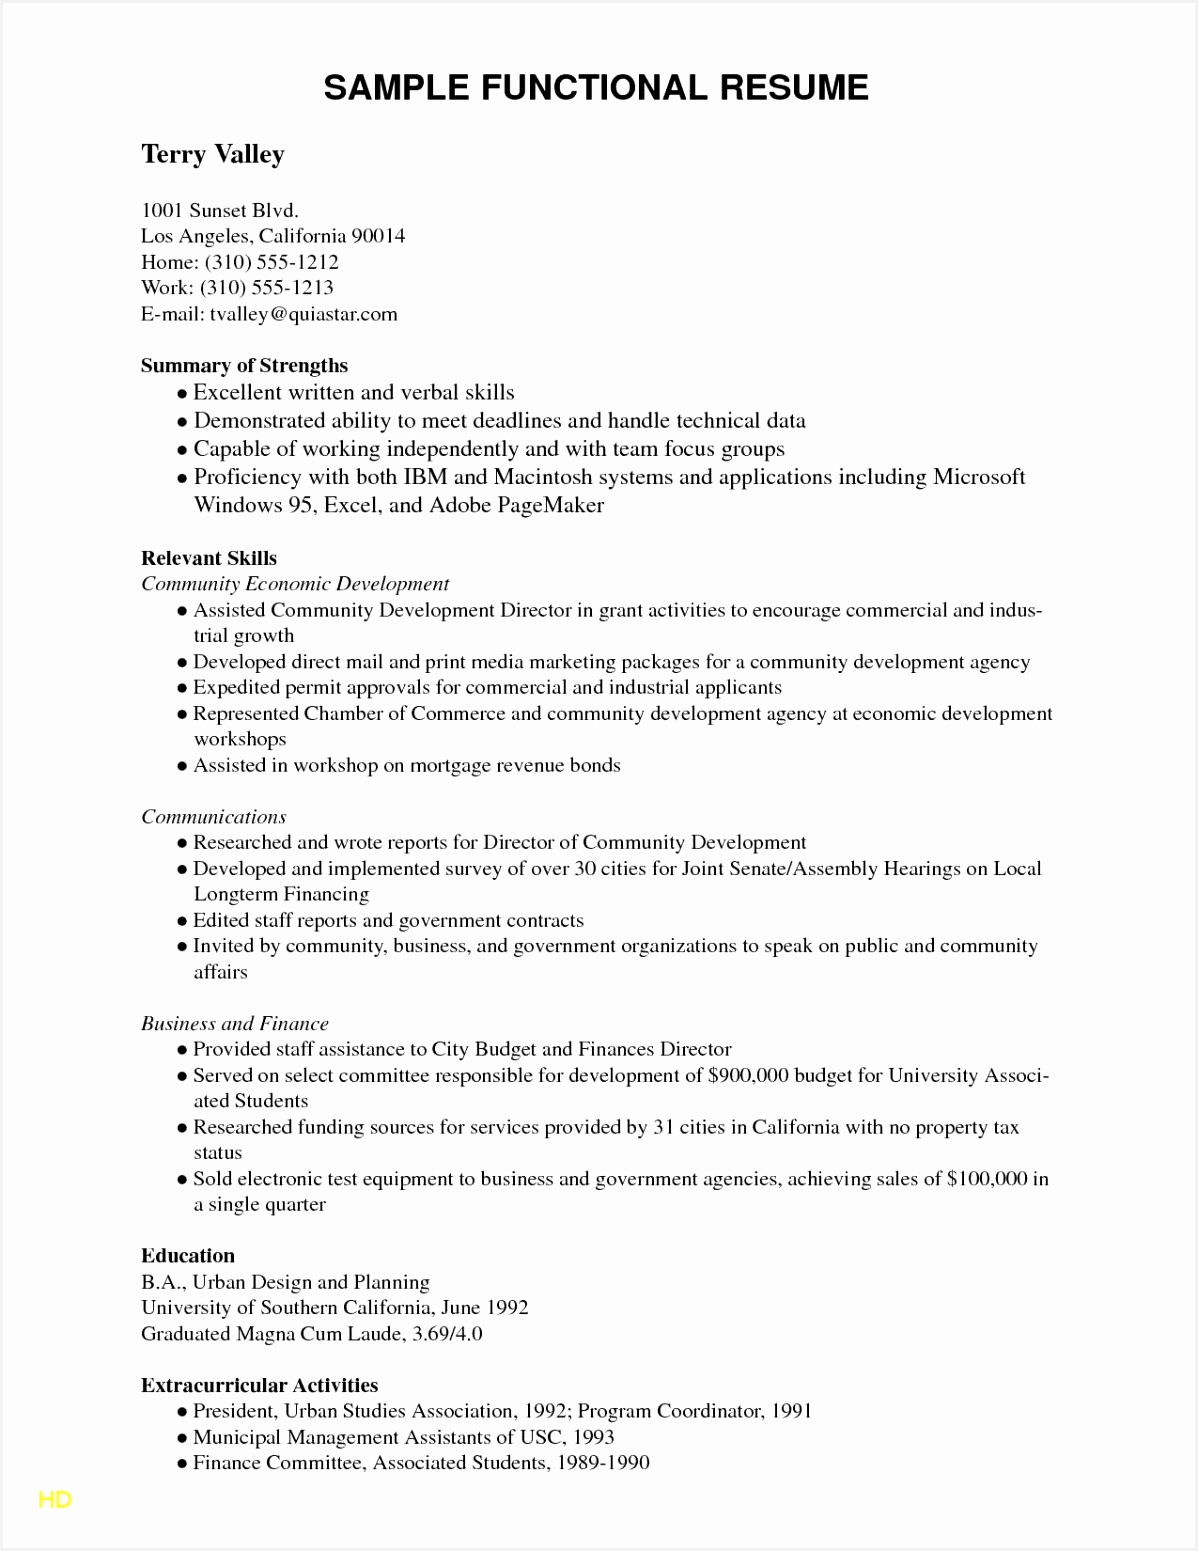 Microsoft Trainer Sample Resume Qxqav Fresh Sample Resume for Ca Articleship Training Free Template Design Of Microsoft Trainer Sample Resume Vjdoe Unique Sample Pilot Resume – Microsoft Dynamics Ax Sample Resume Archives